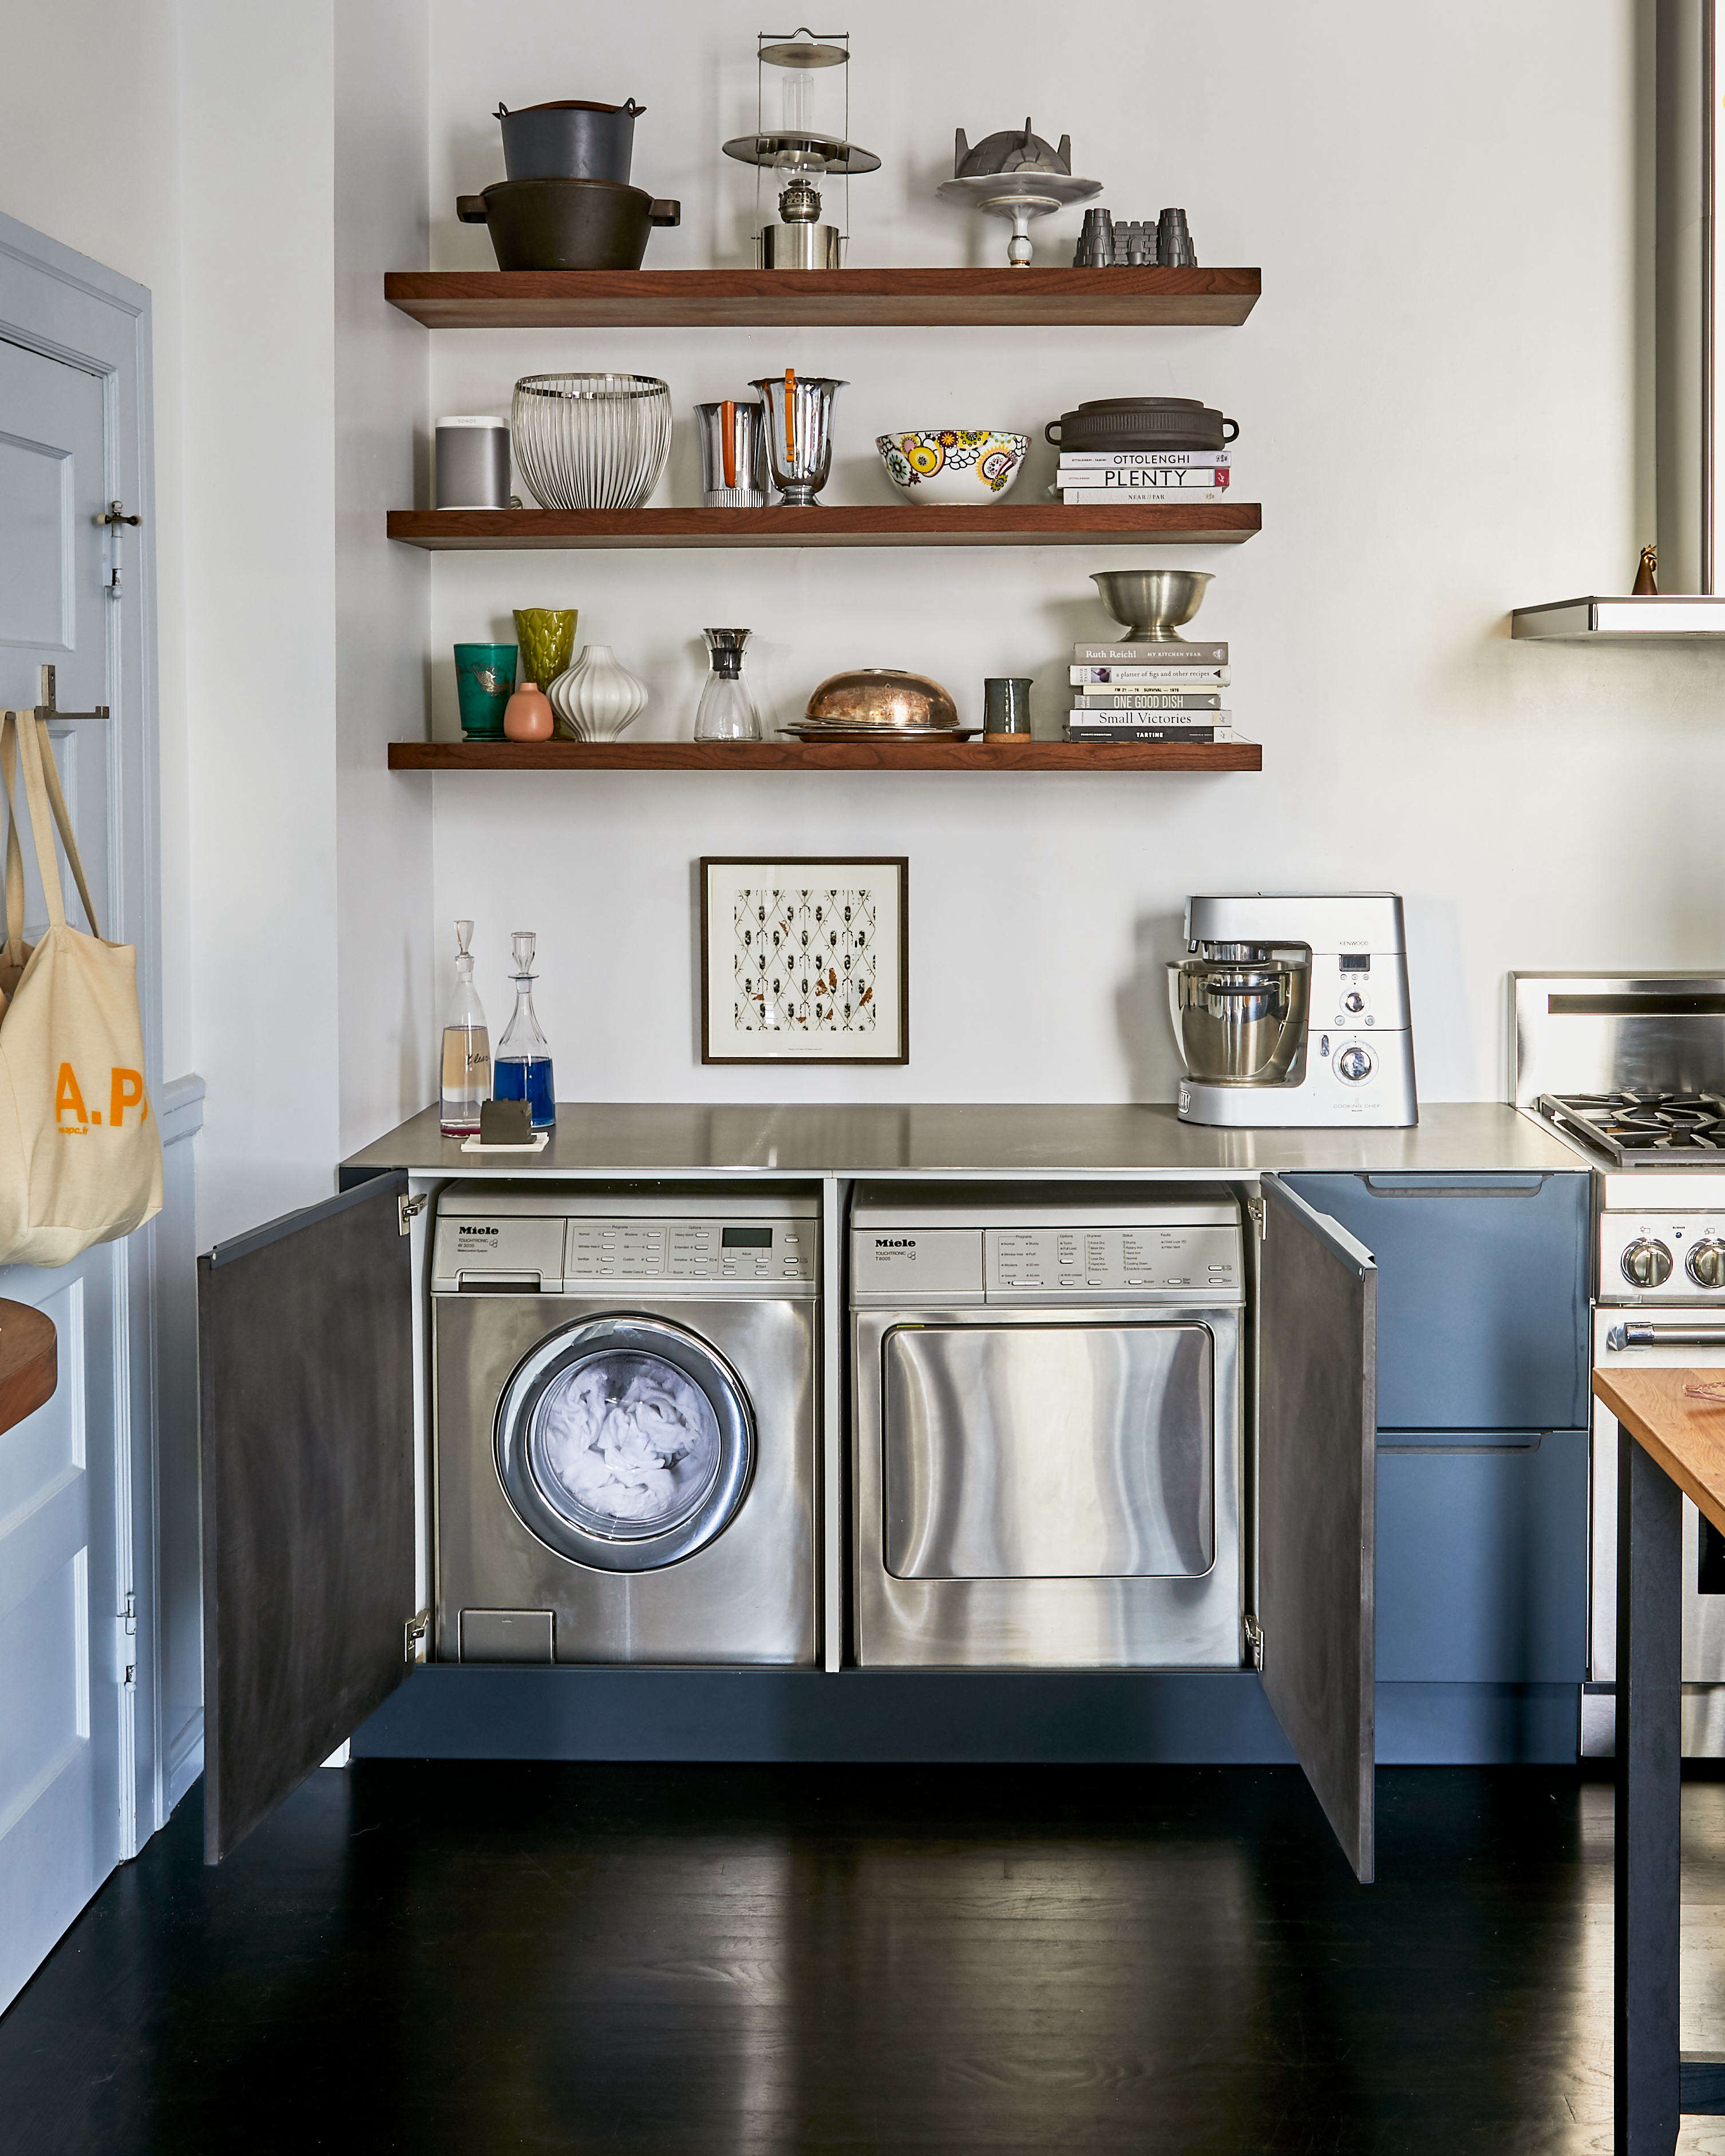 5 Clever And Stylish Ways To Conceal The Washer And Dryer